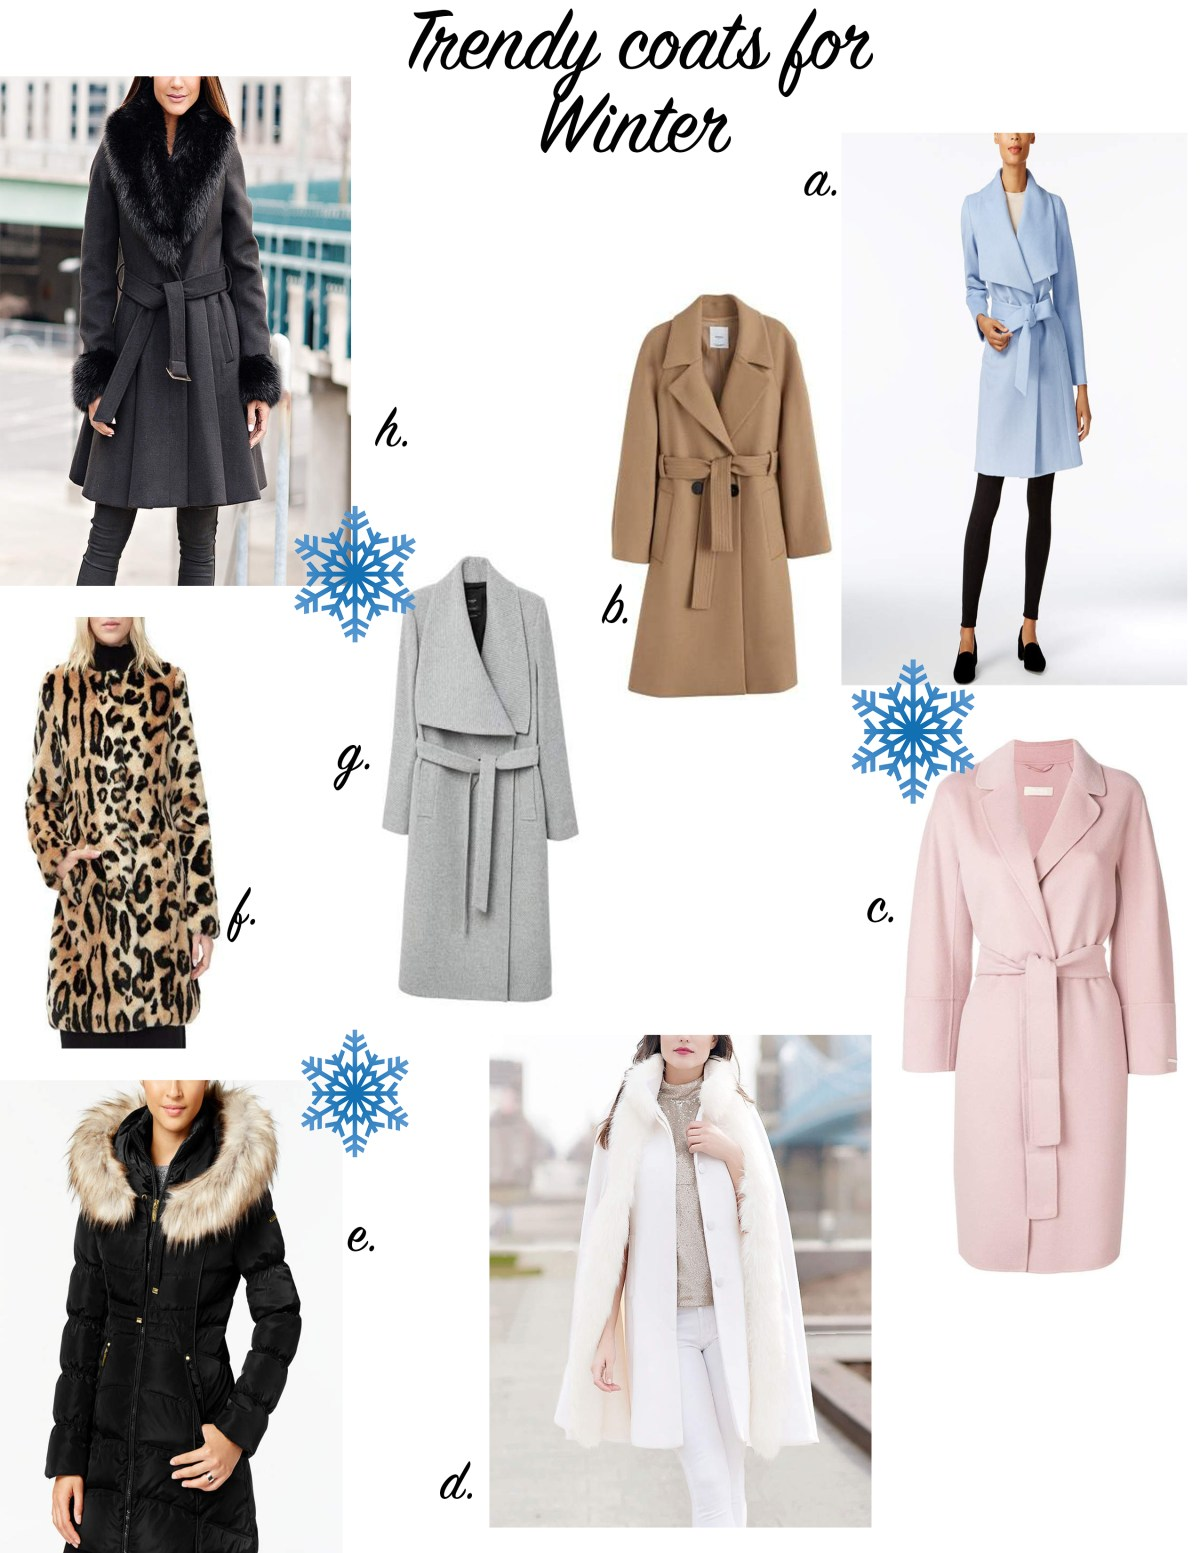 Essential coats to stock up on before winter